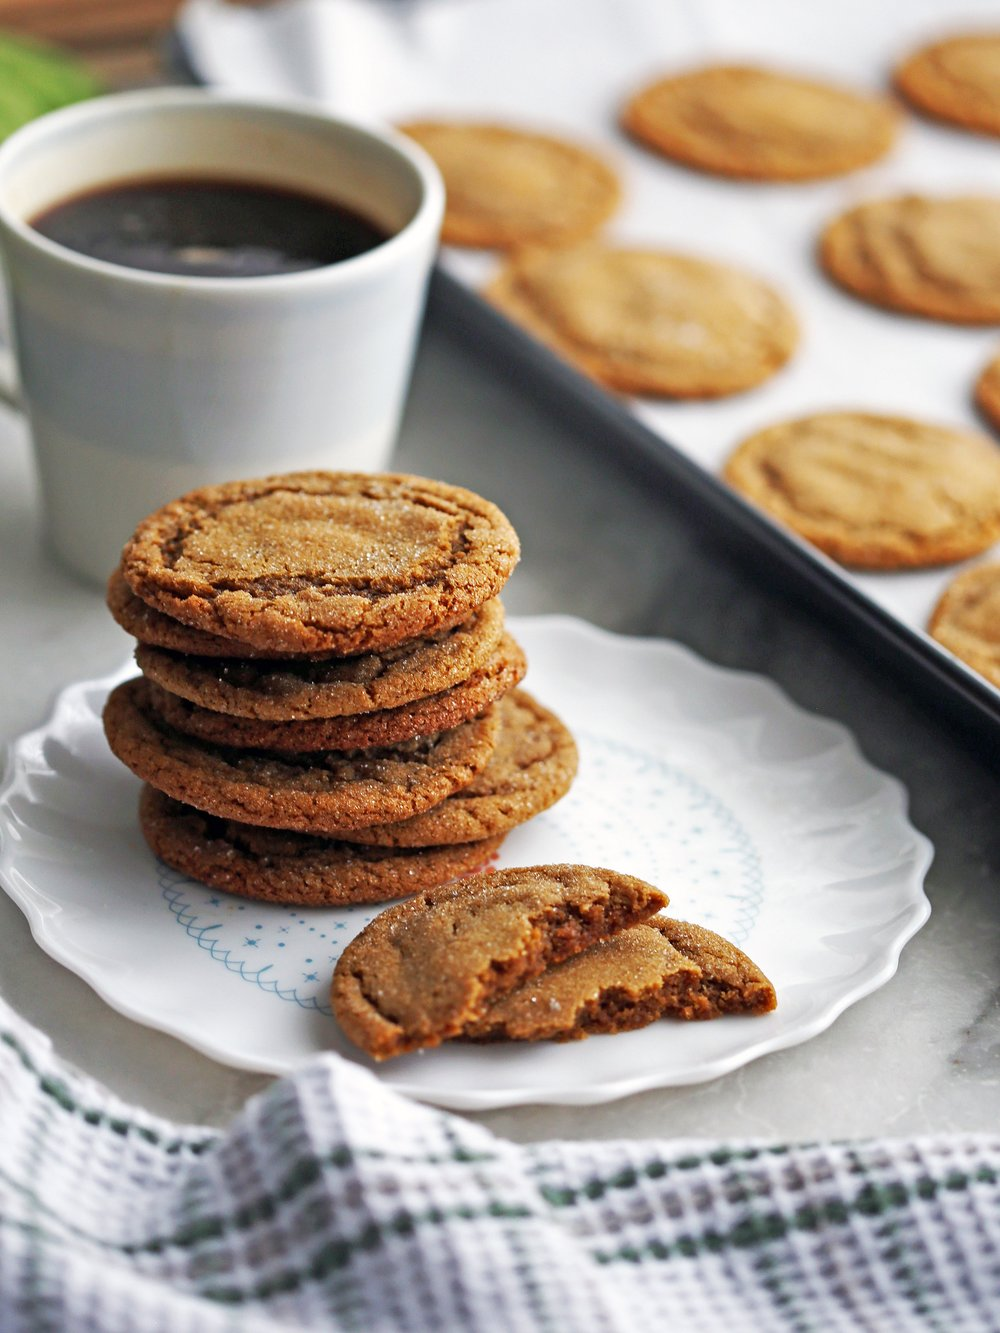 A closeup side view of a stack of chewy gingersnap (ginger molasses) cookies with coffee and more cookies in the background.